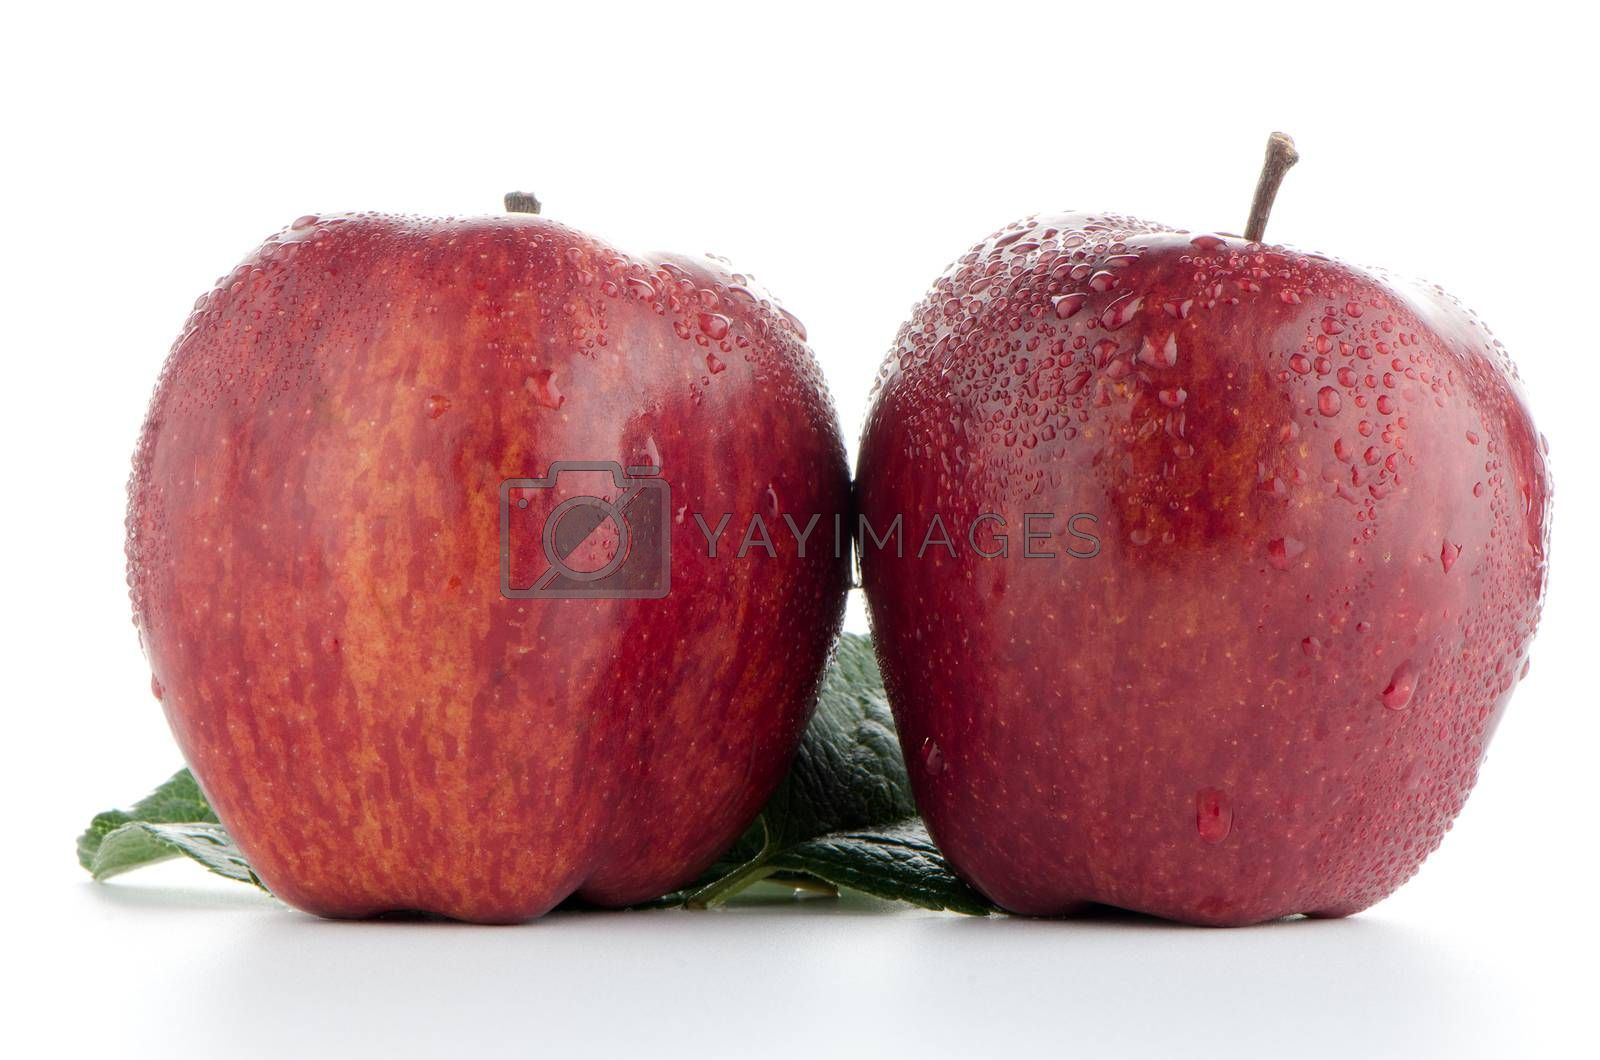 Royalty free image of Ripe red apples by homydesign